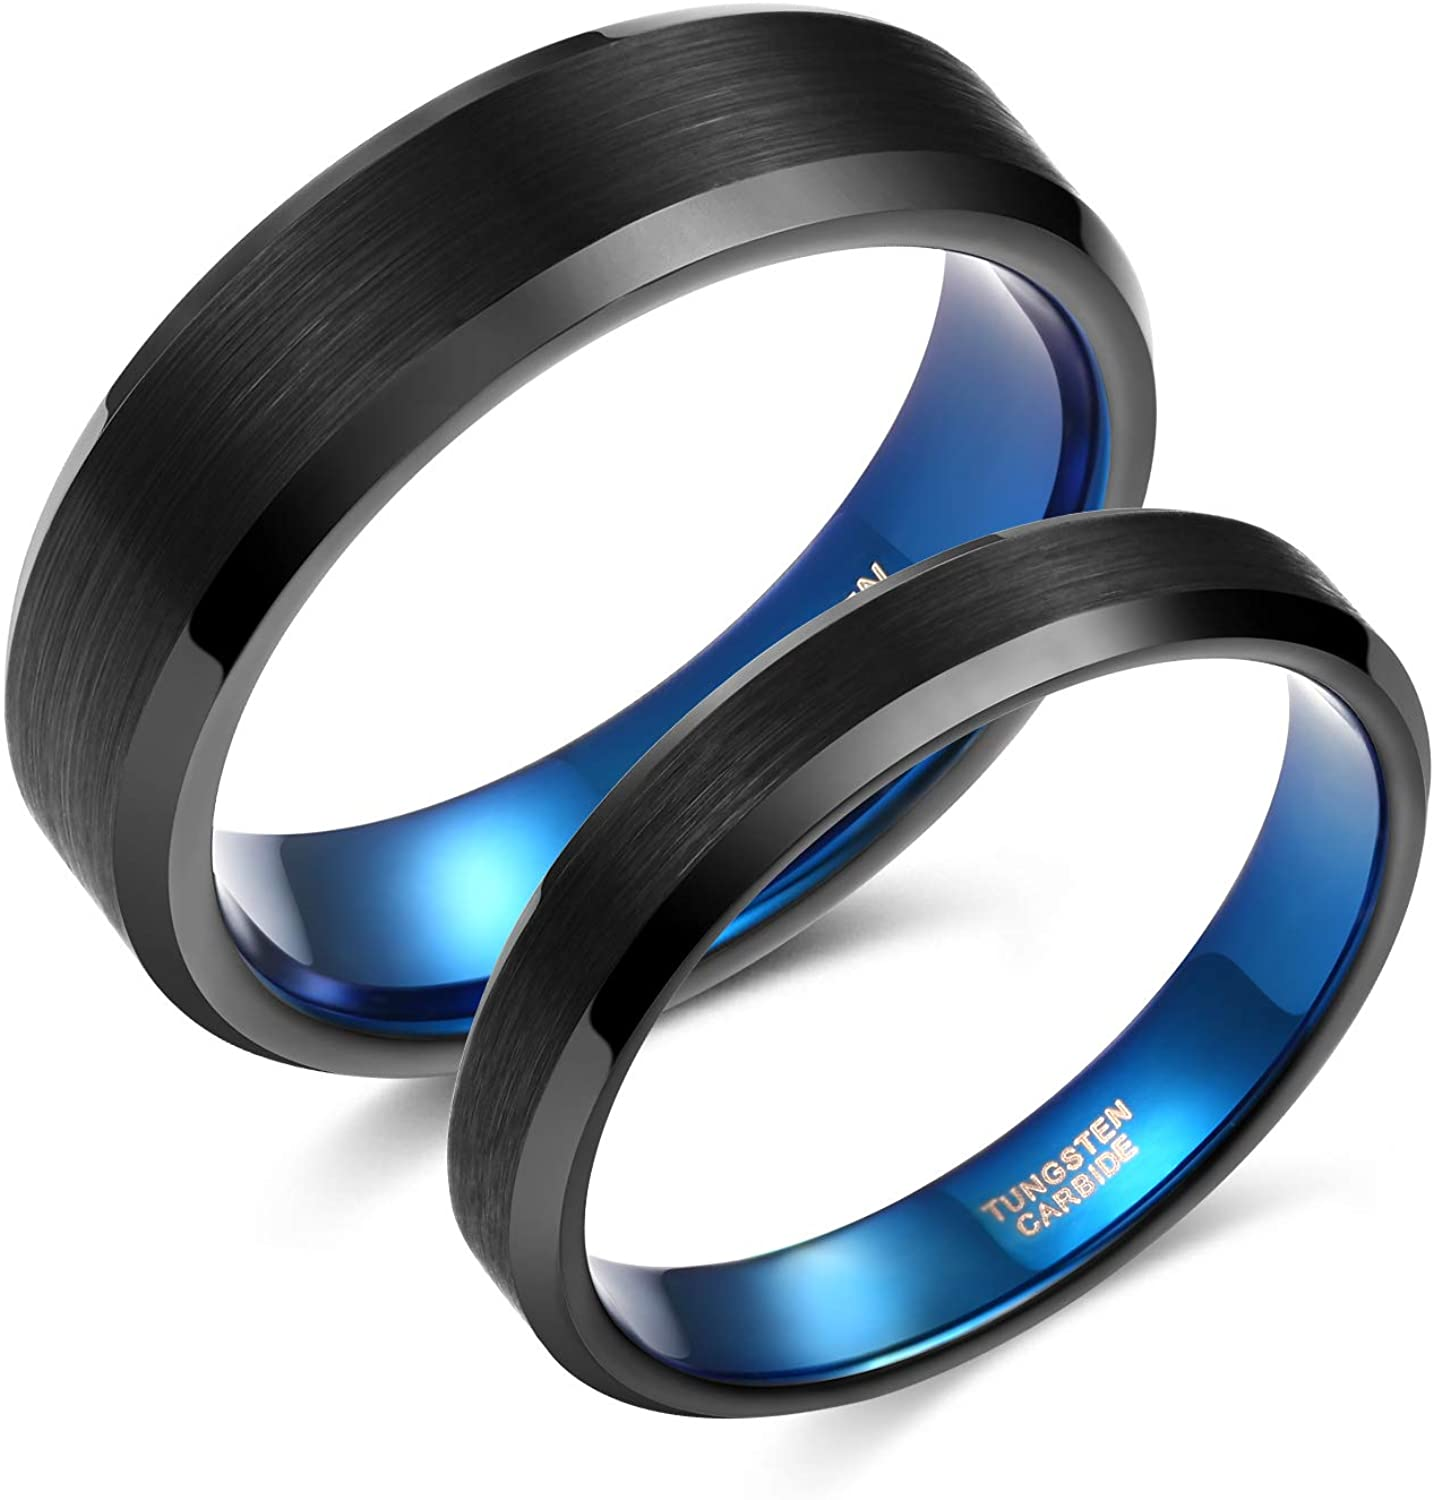 Greenpod 4mm 6mm Wedding Band for Men Women Black Blue Brushed Tungsten Carbide Wedding Rings for Couples Size 4-13